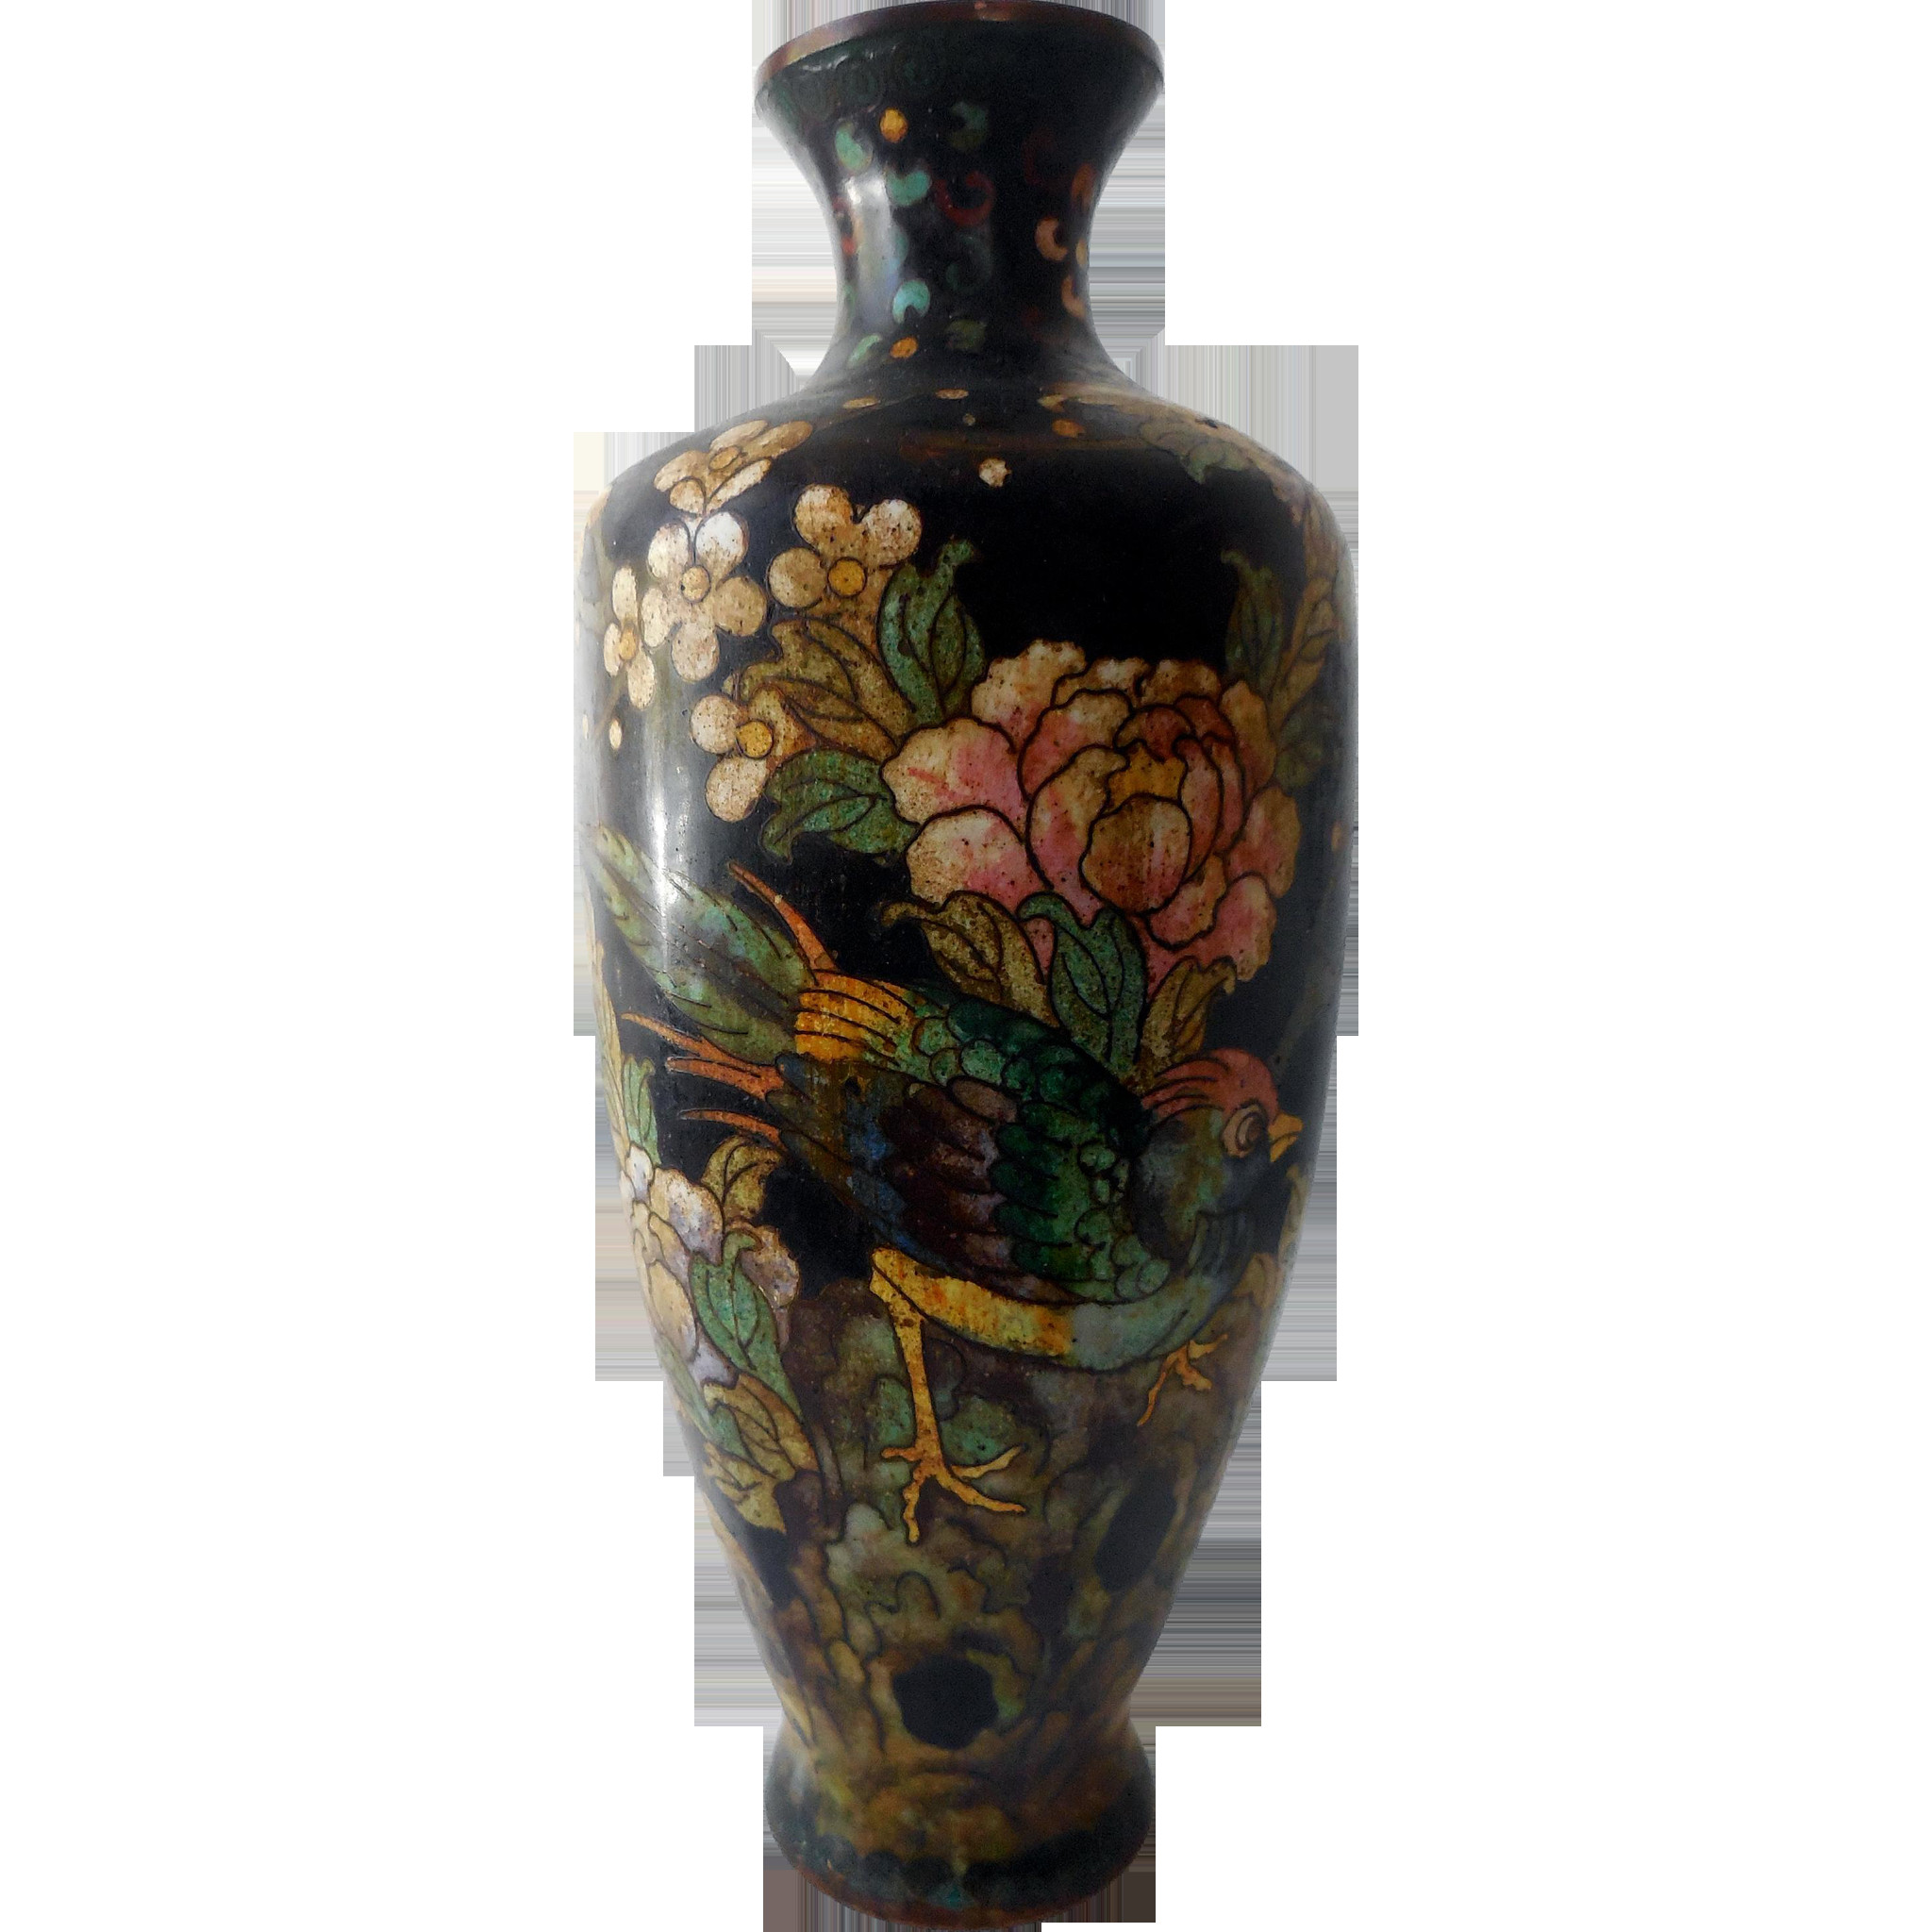 nippon vase marks of antique chinese cloisonne vase 19th c great ming mark japanese inside antique chinese cloisonne vase 19th c great ming mark